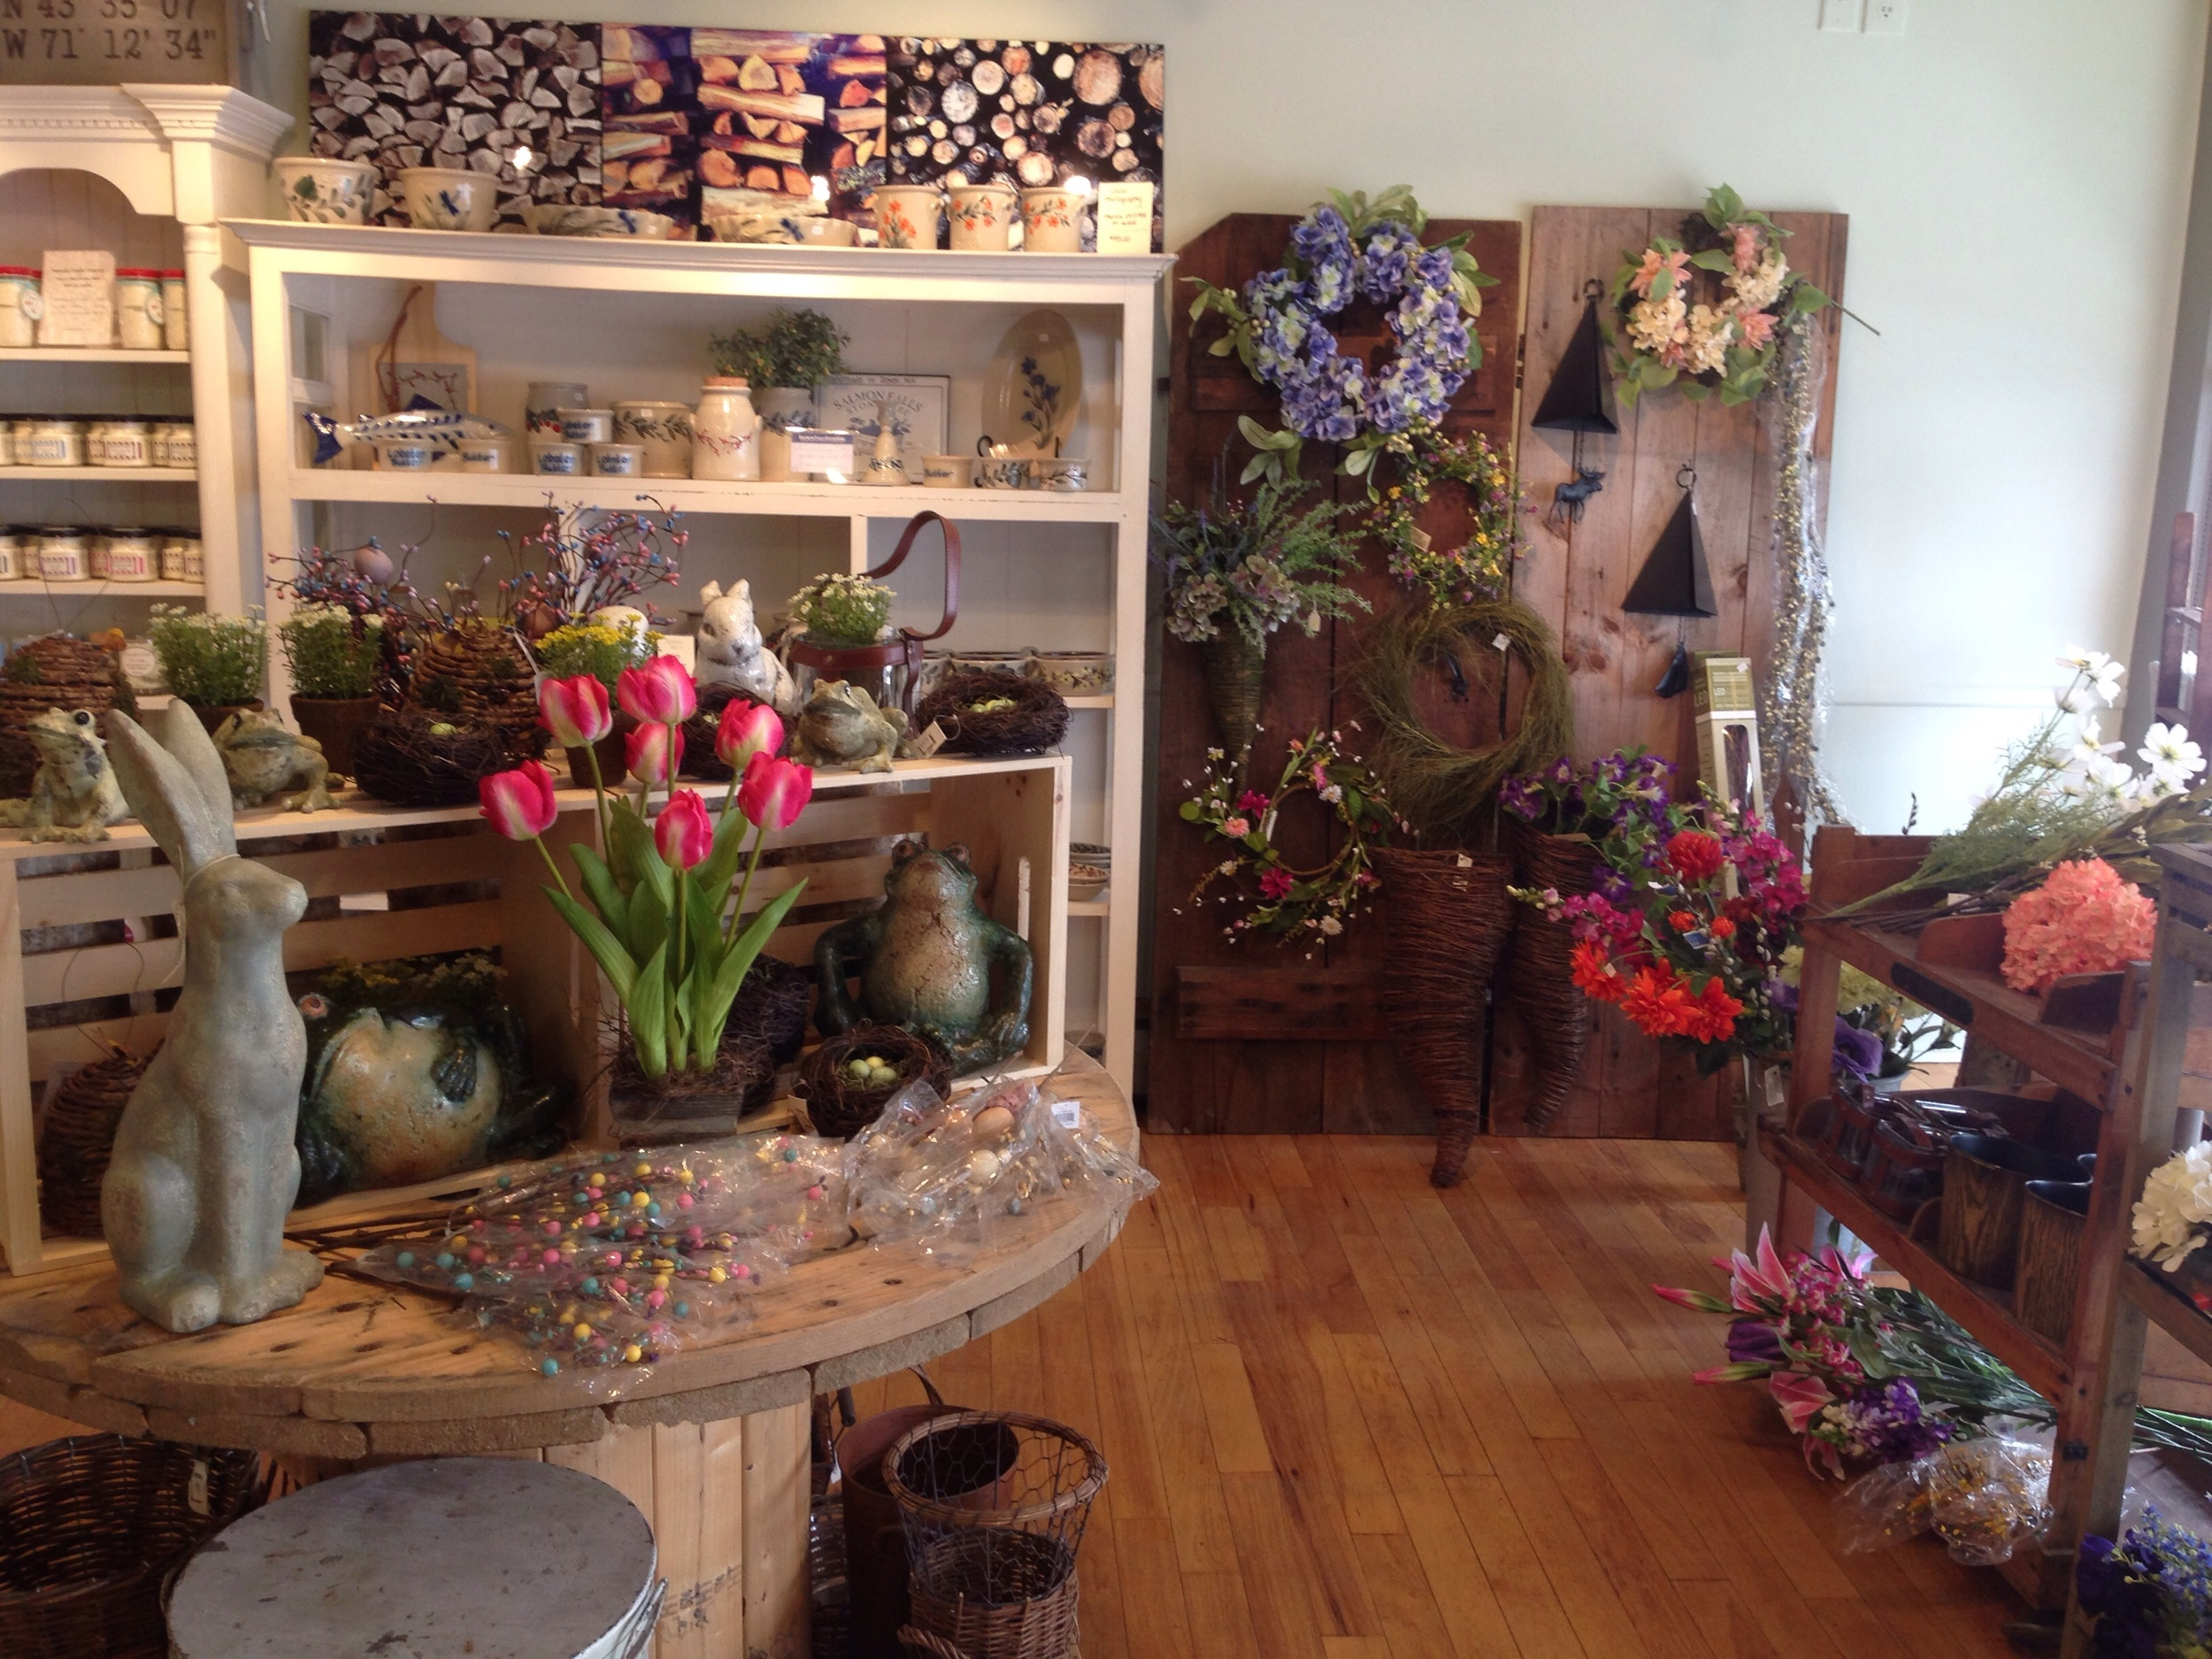 Beautiful spring items at The Straw Cellar in Wolfeboro, NH.